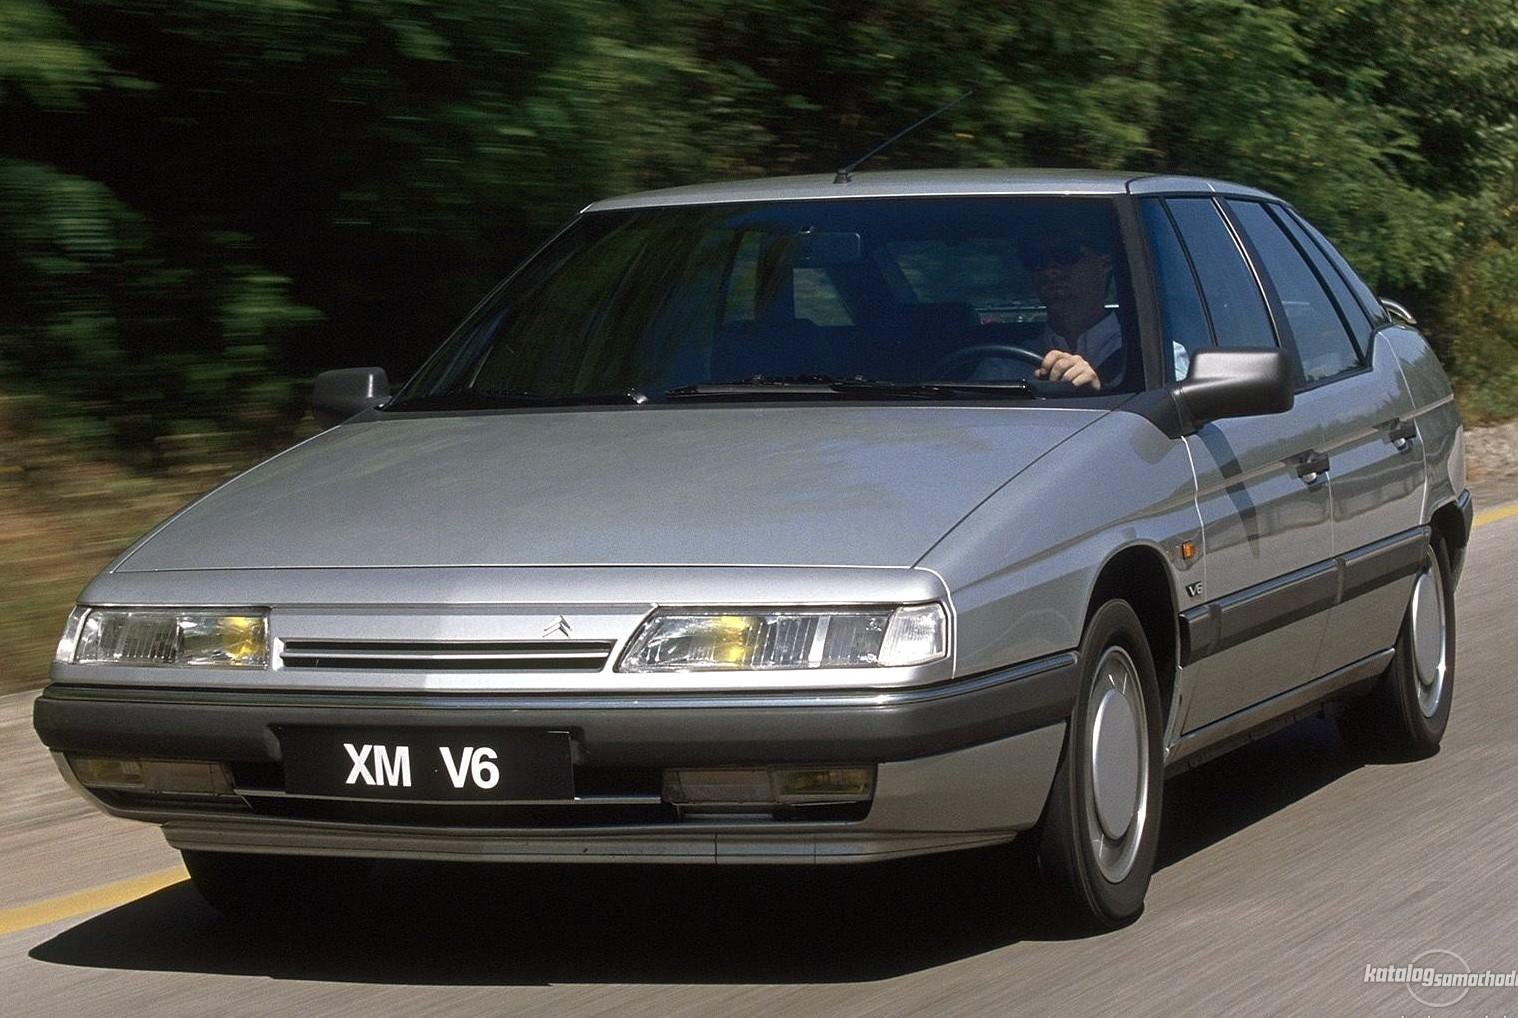 XM V6 1989 front view